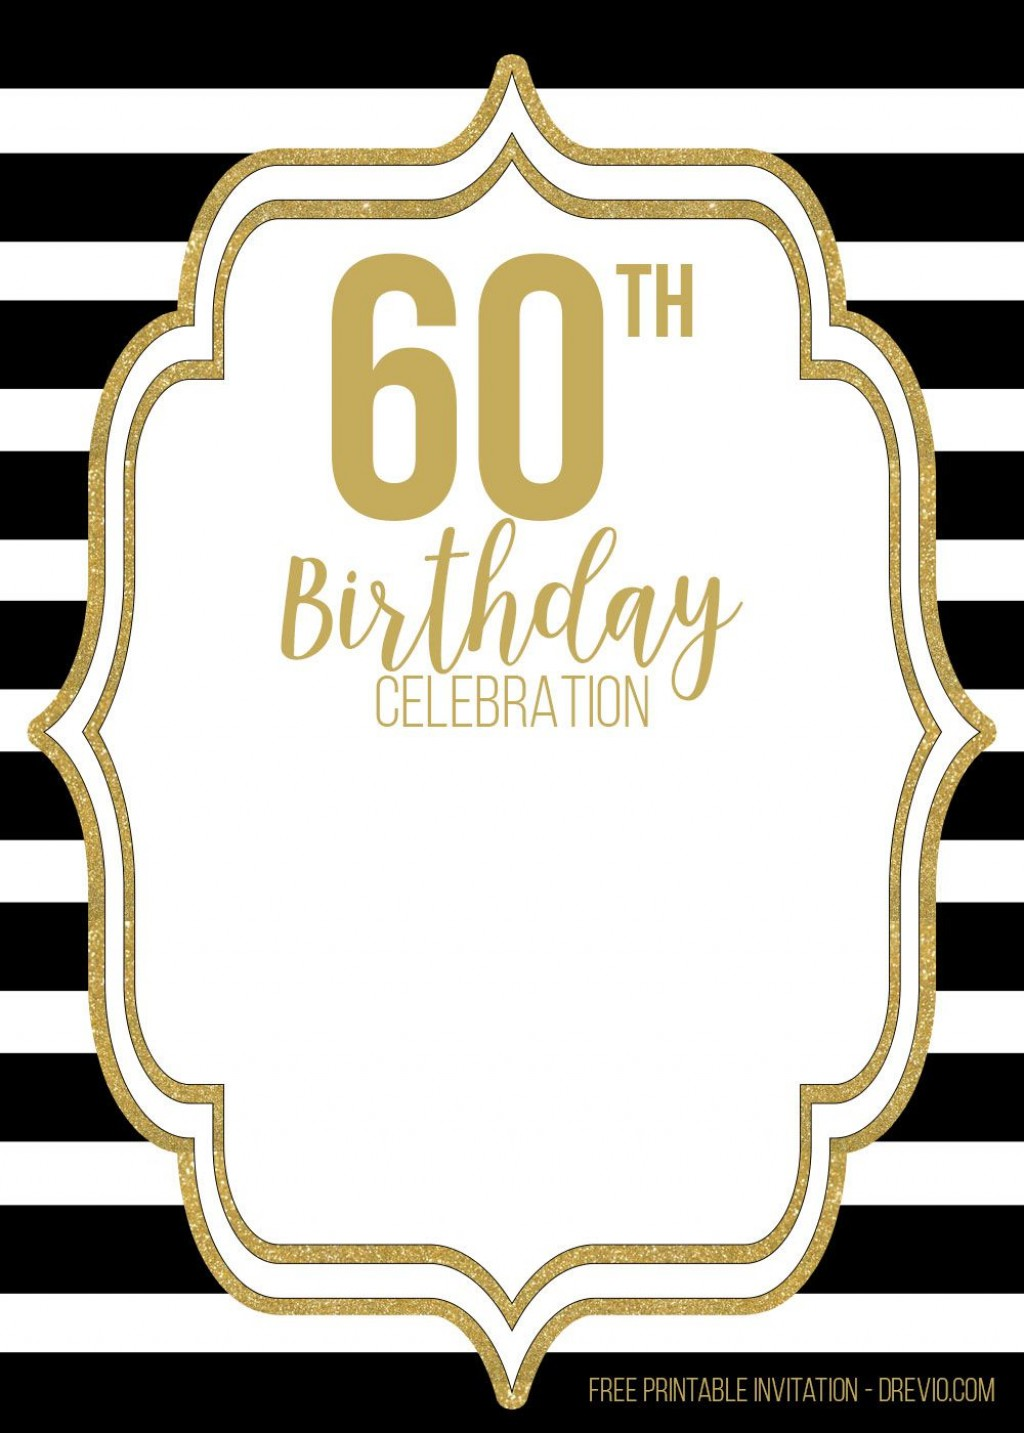 009 Sensational 60th Birthday Invite Template Picture  Templates Funny Invitation Free PartyLarge